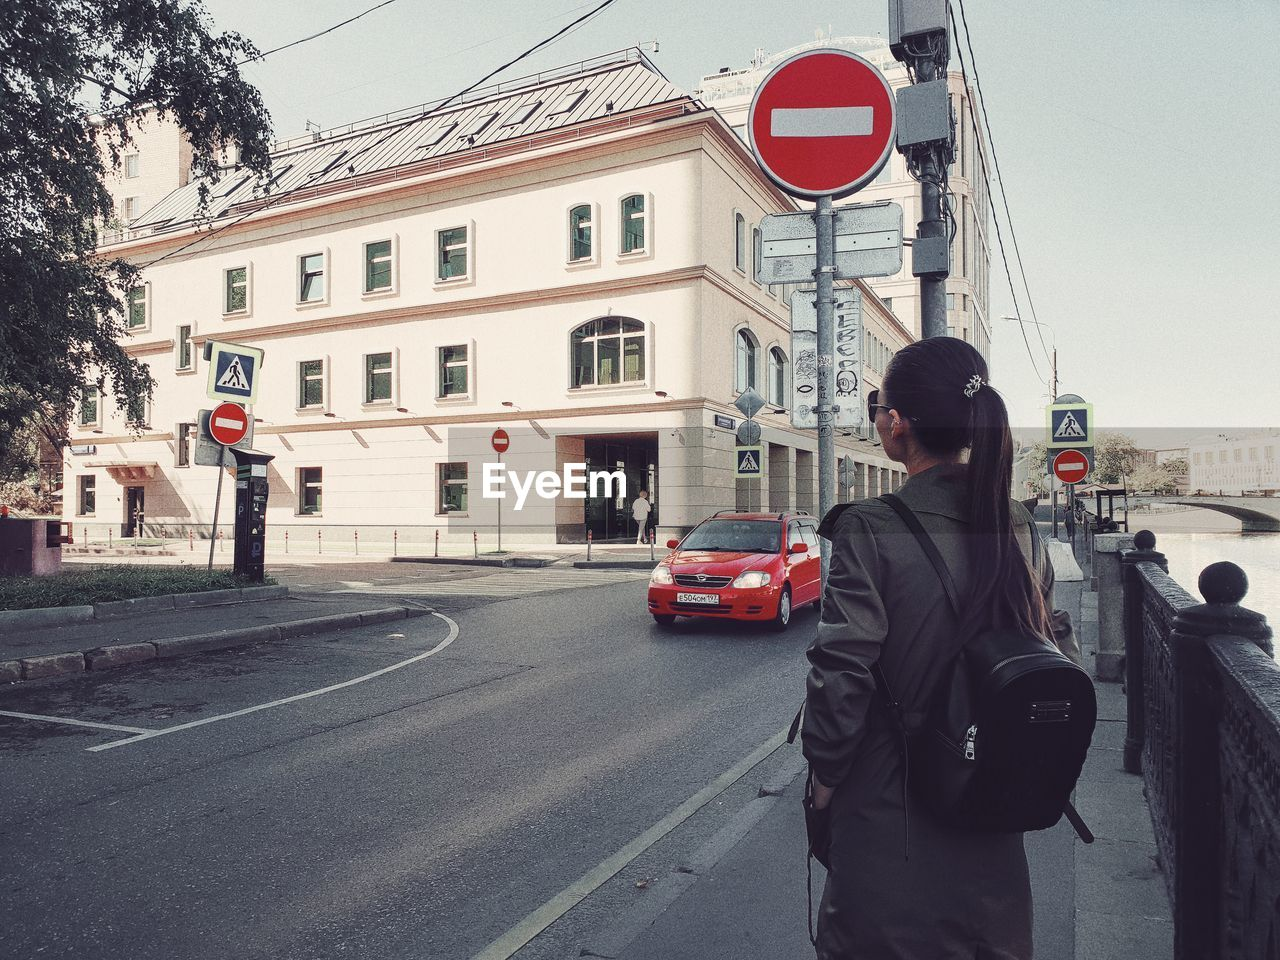 city, transportation, architecture, one person, motor vehicle, sign, car, building exterior, built structure, mode of transportation, real people, road, street, land vehicle, standing, road sign, three quarter length, city life, day, outdoors